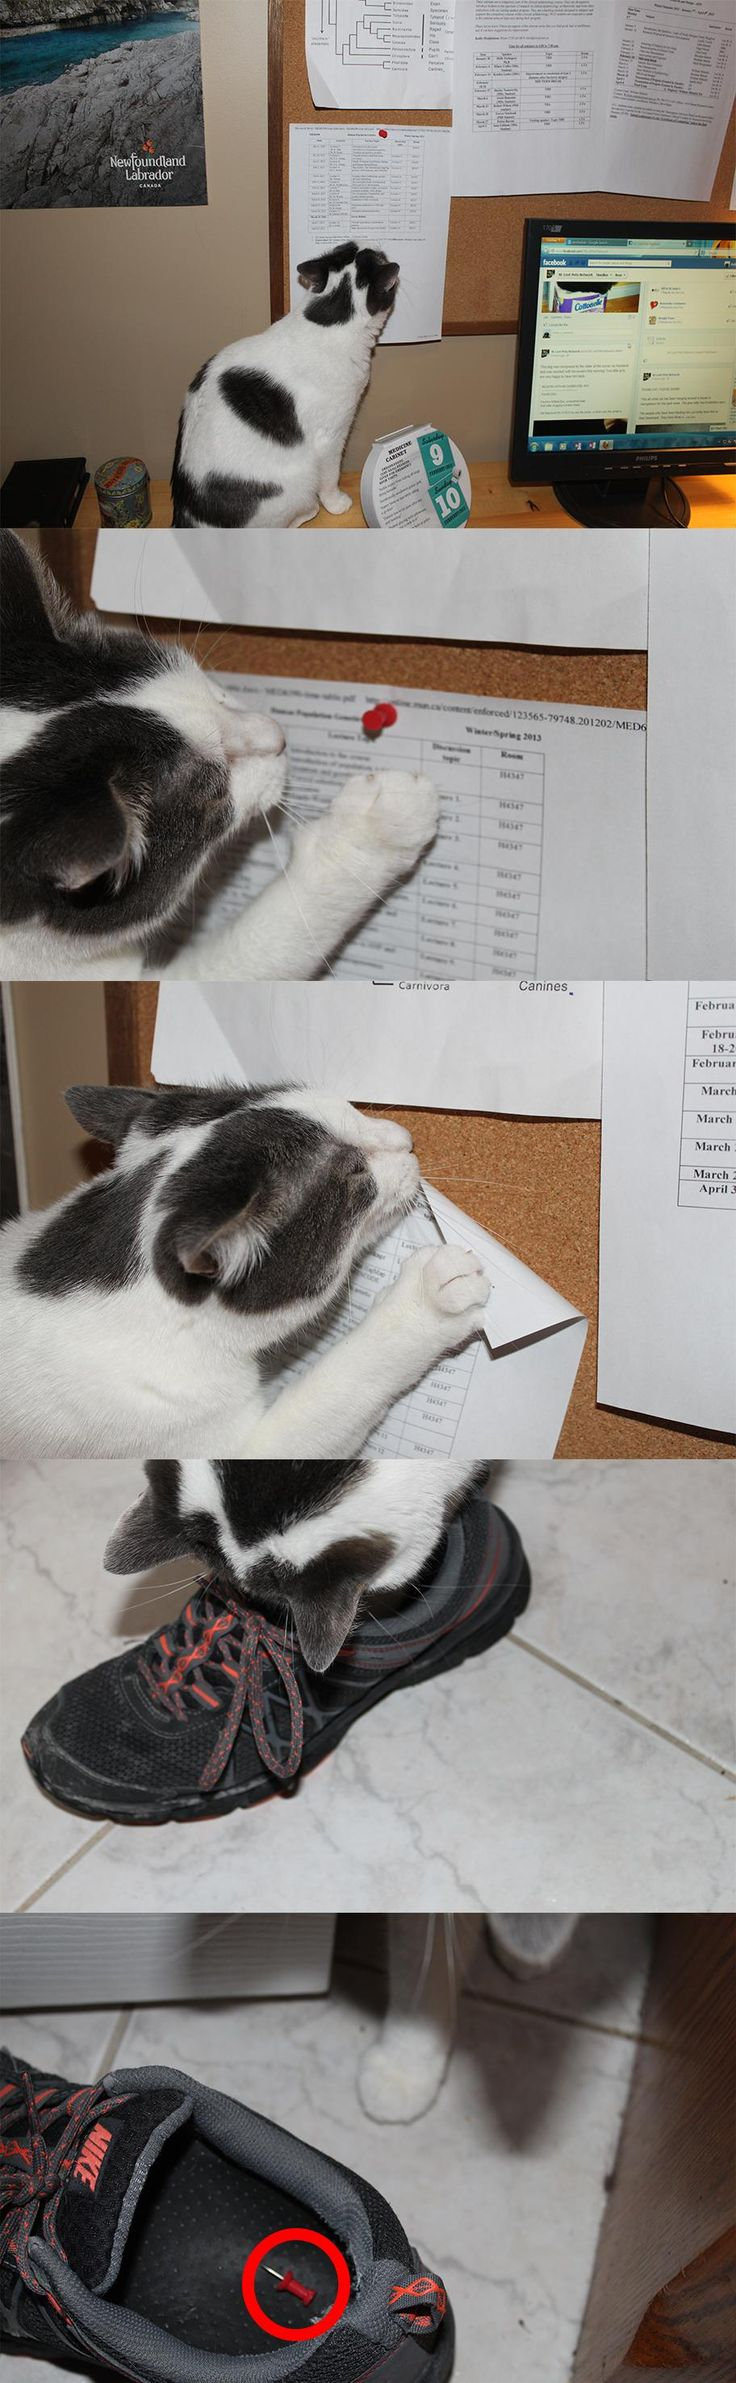 My cat would do this to me!